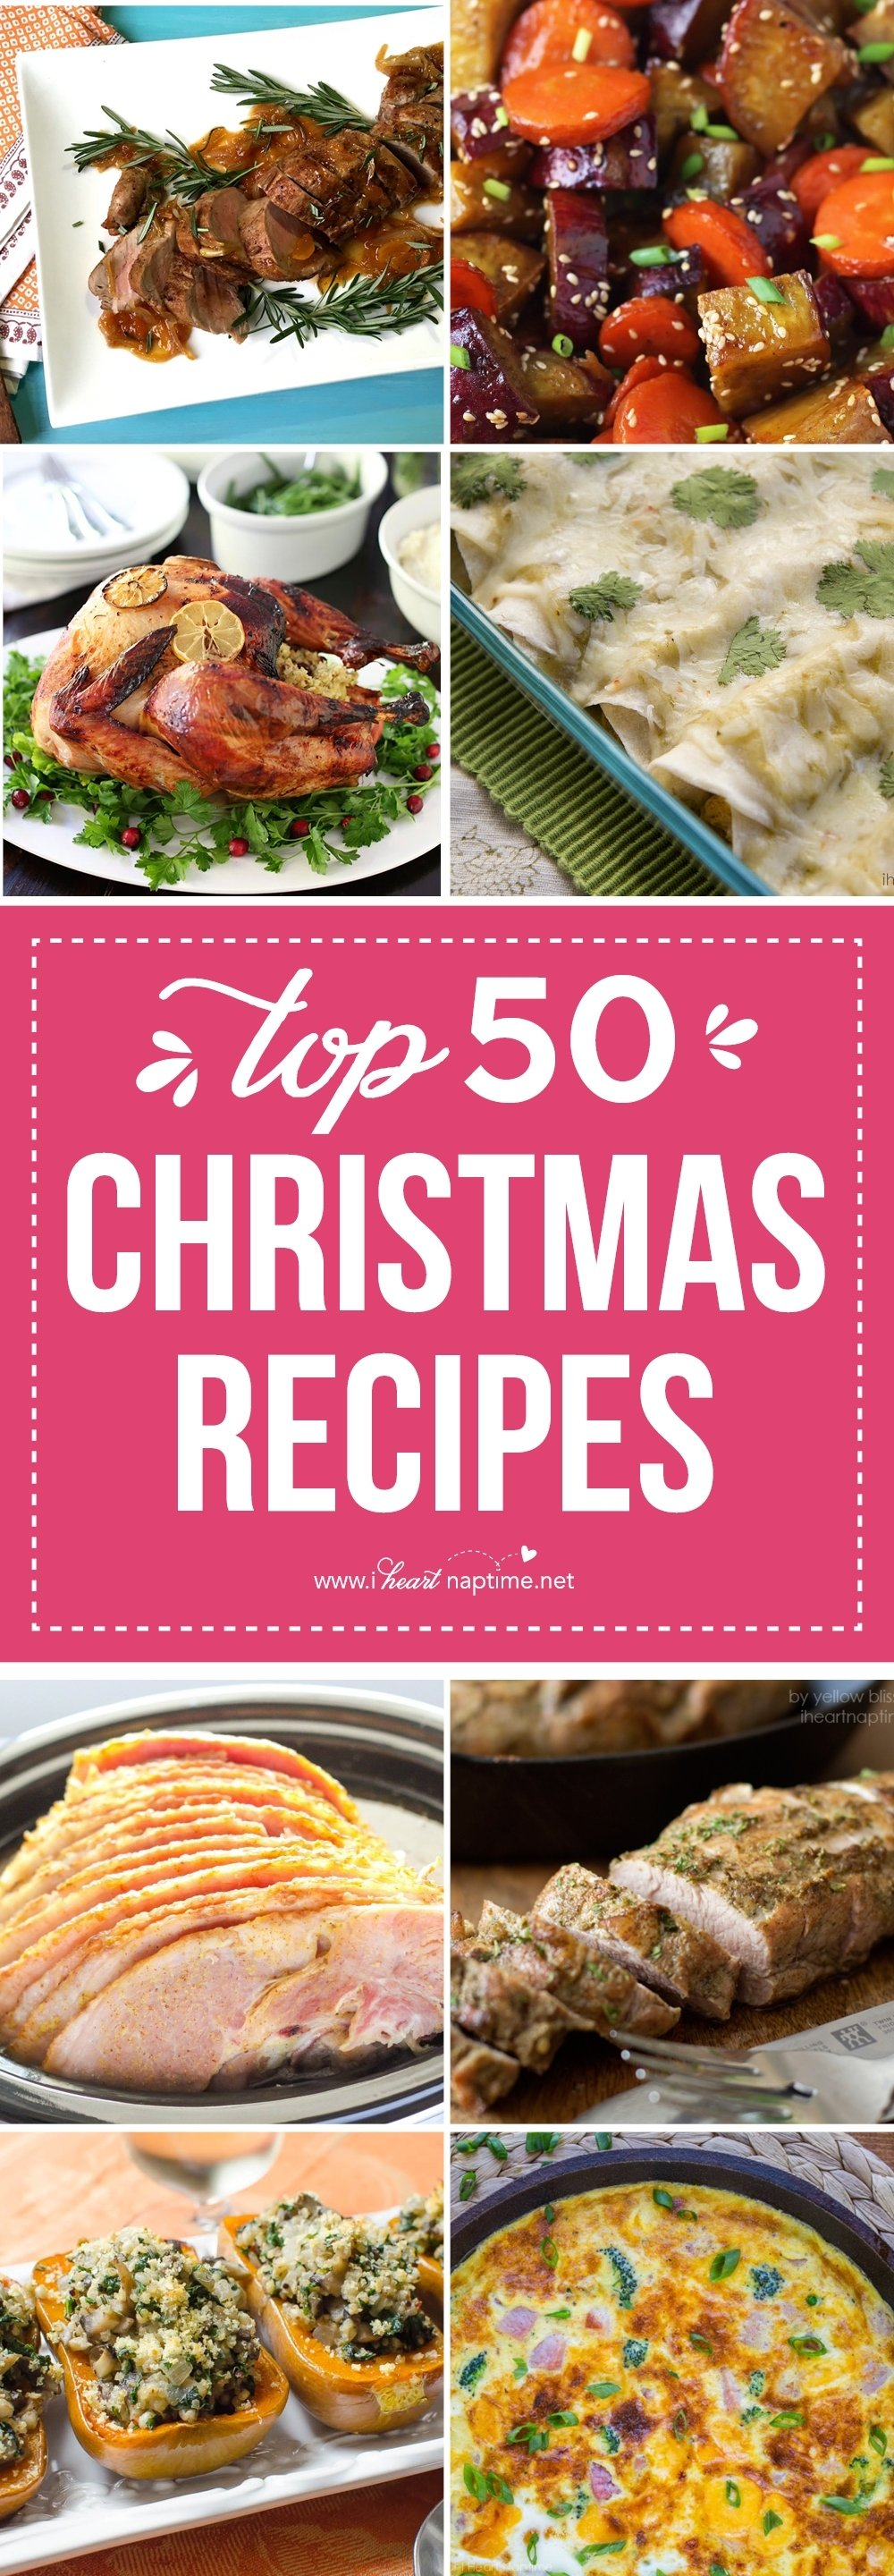 10 Amazing Christmas Dinner Side Dish Ideas top 50 christmas dinner recipes i heart nap time 1 2020